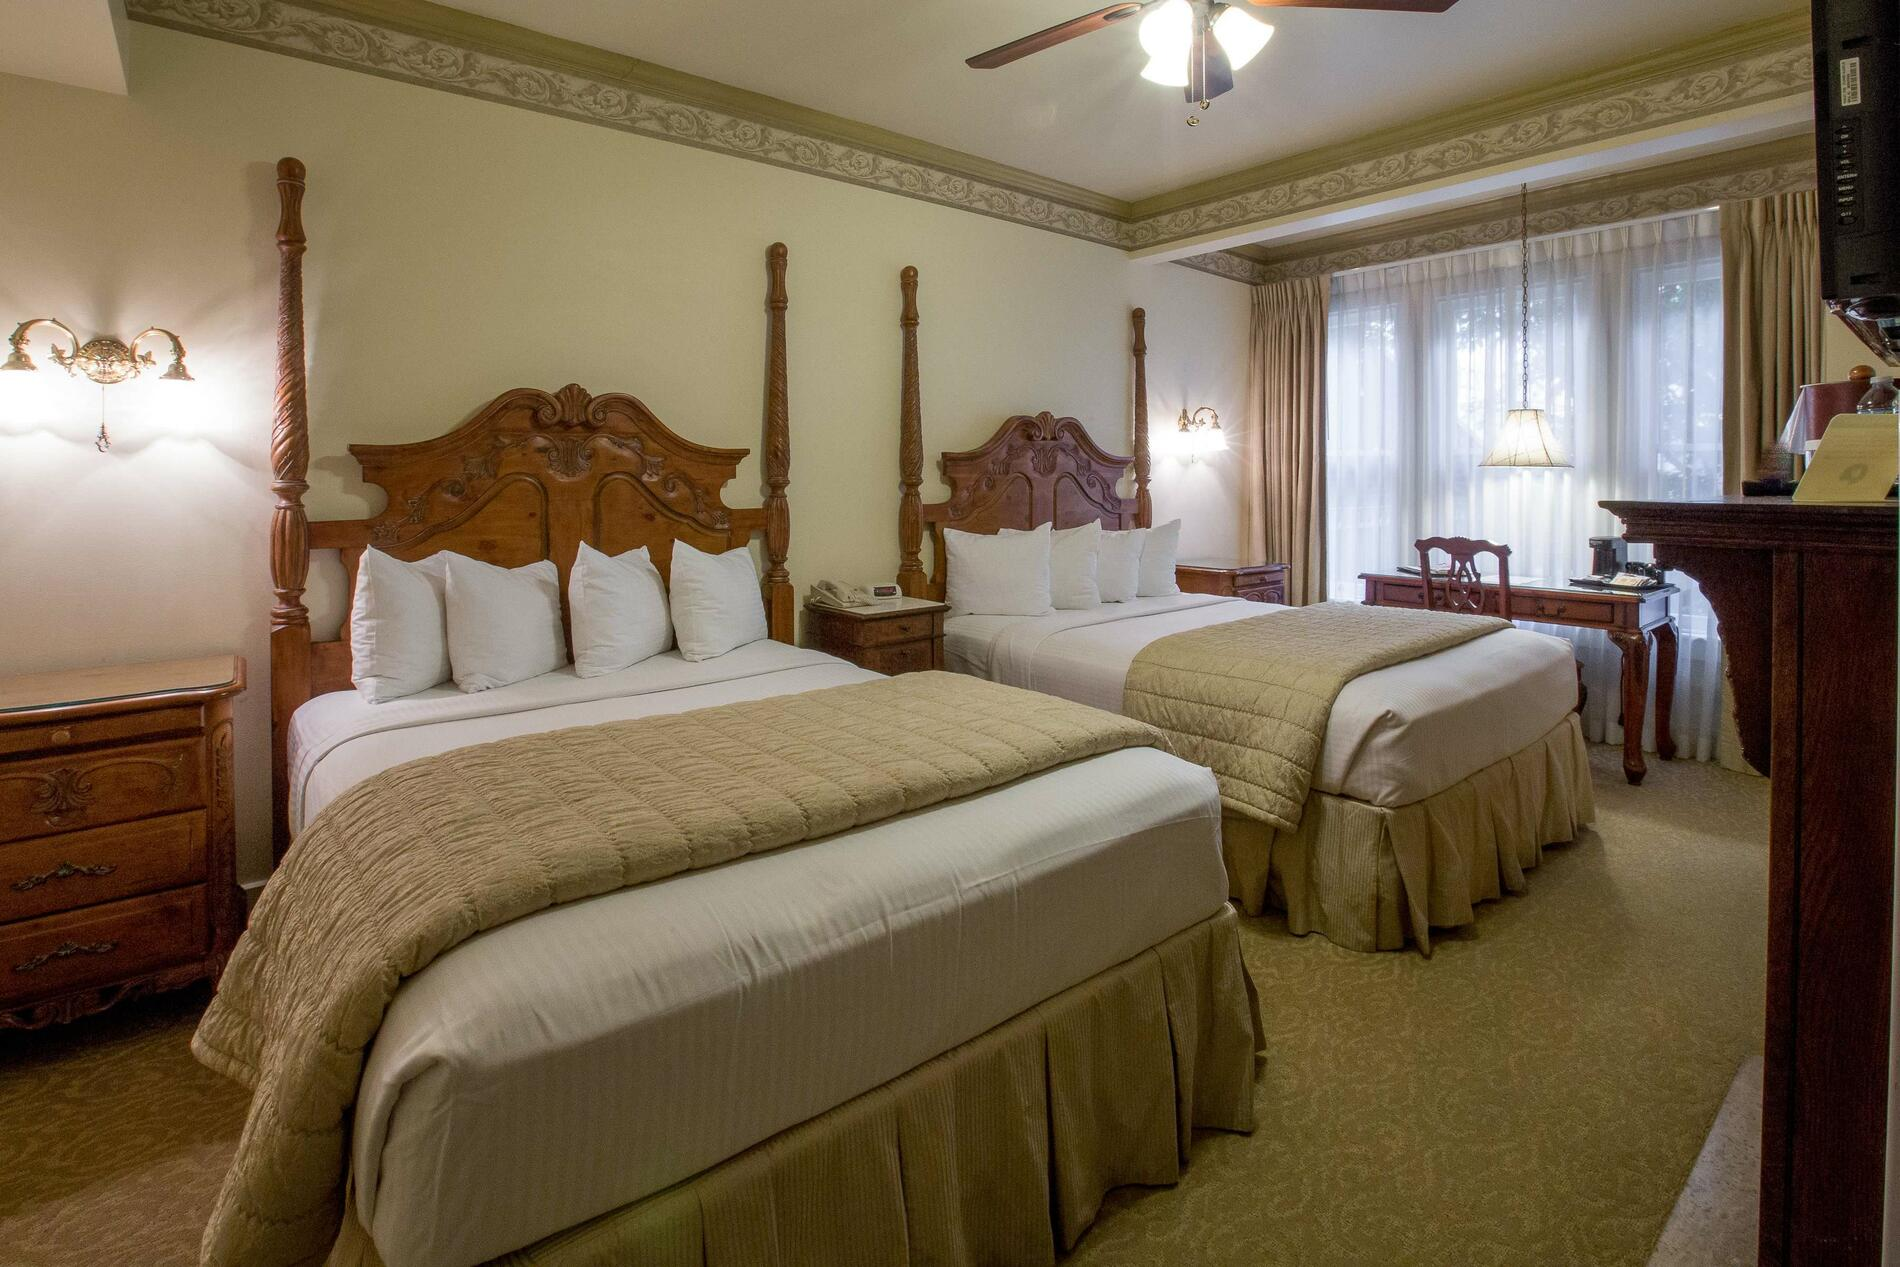 Two guest beds